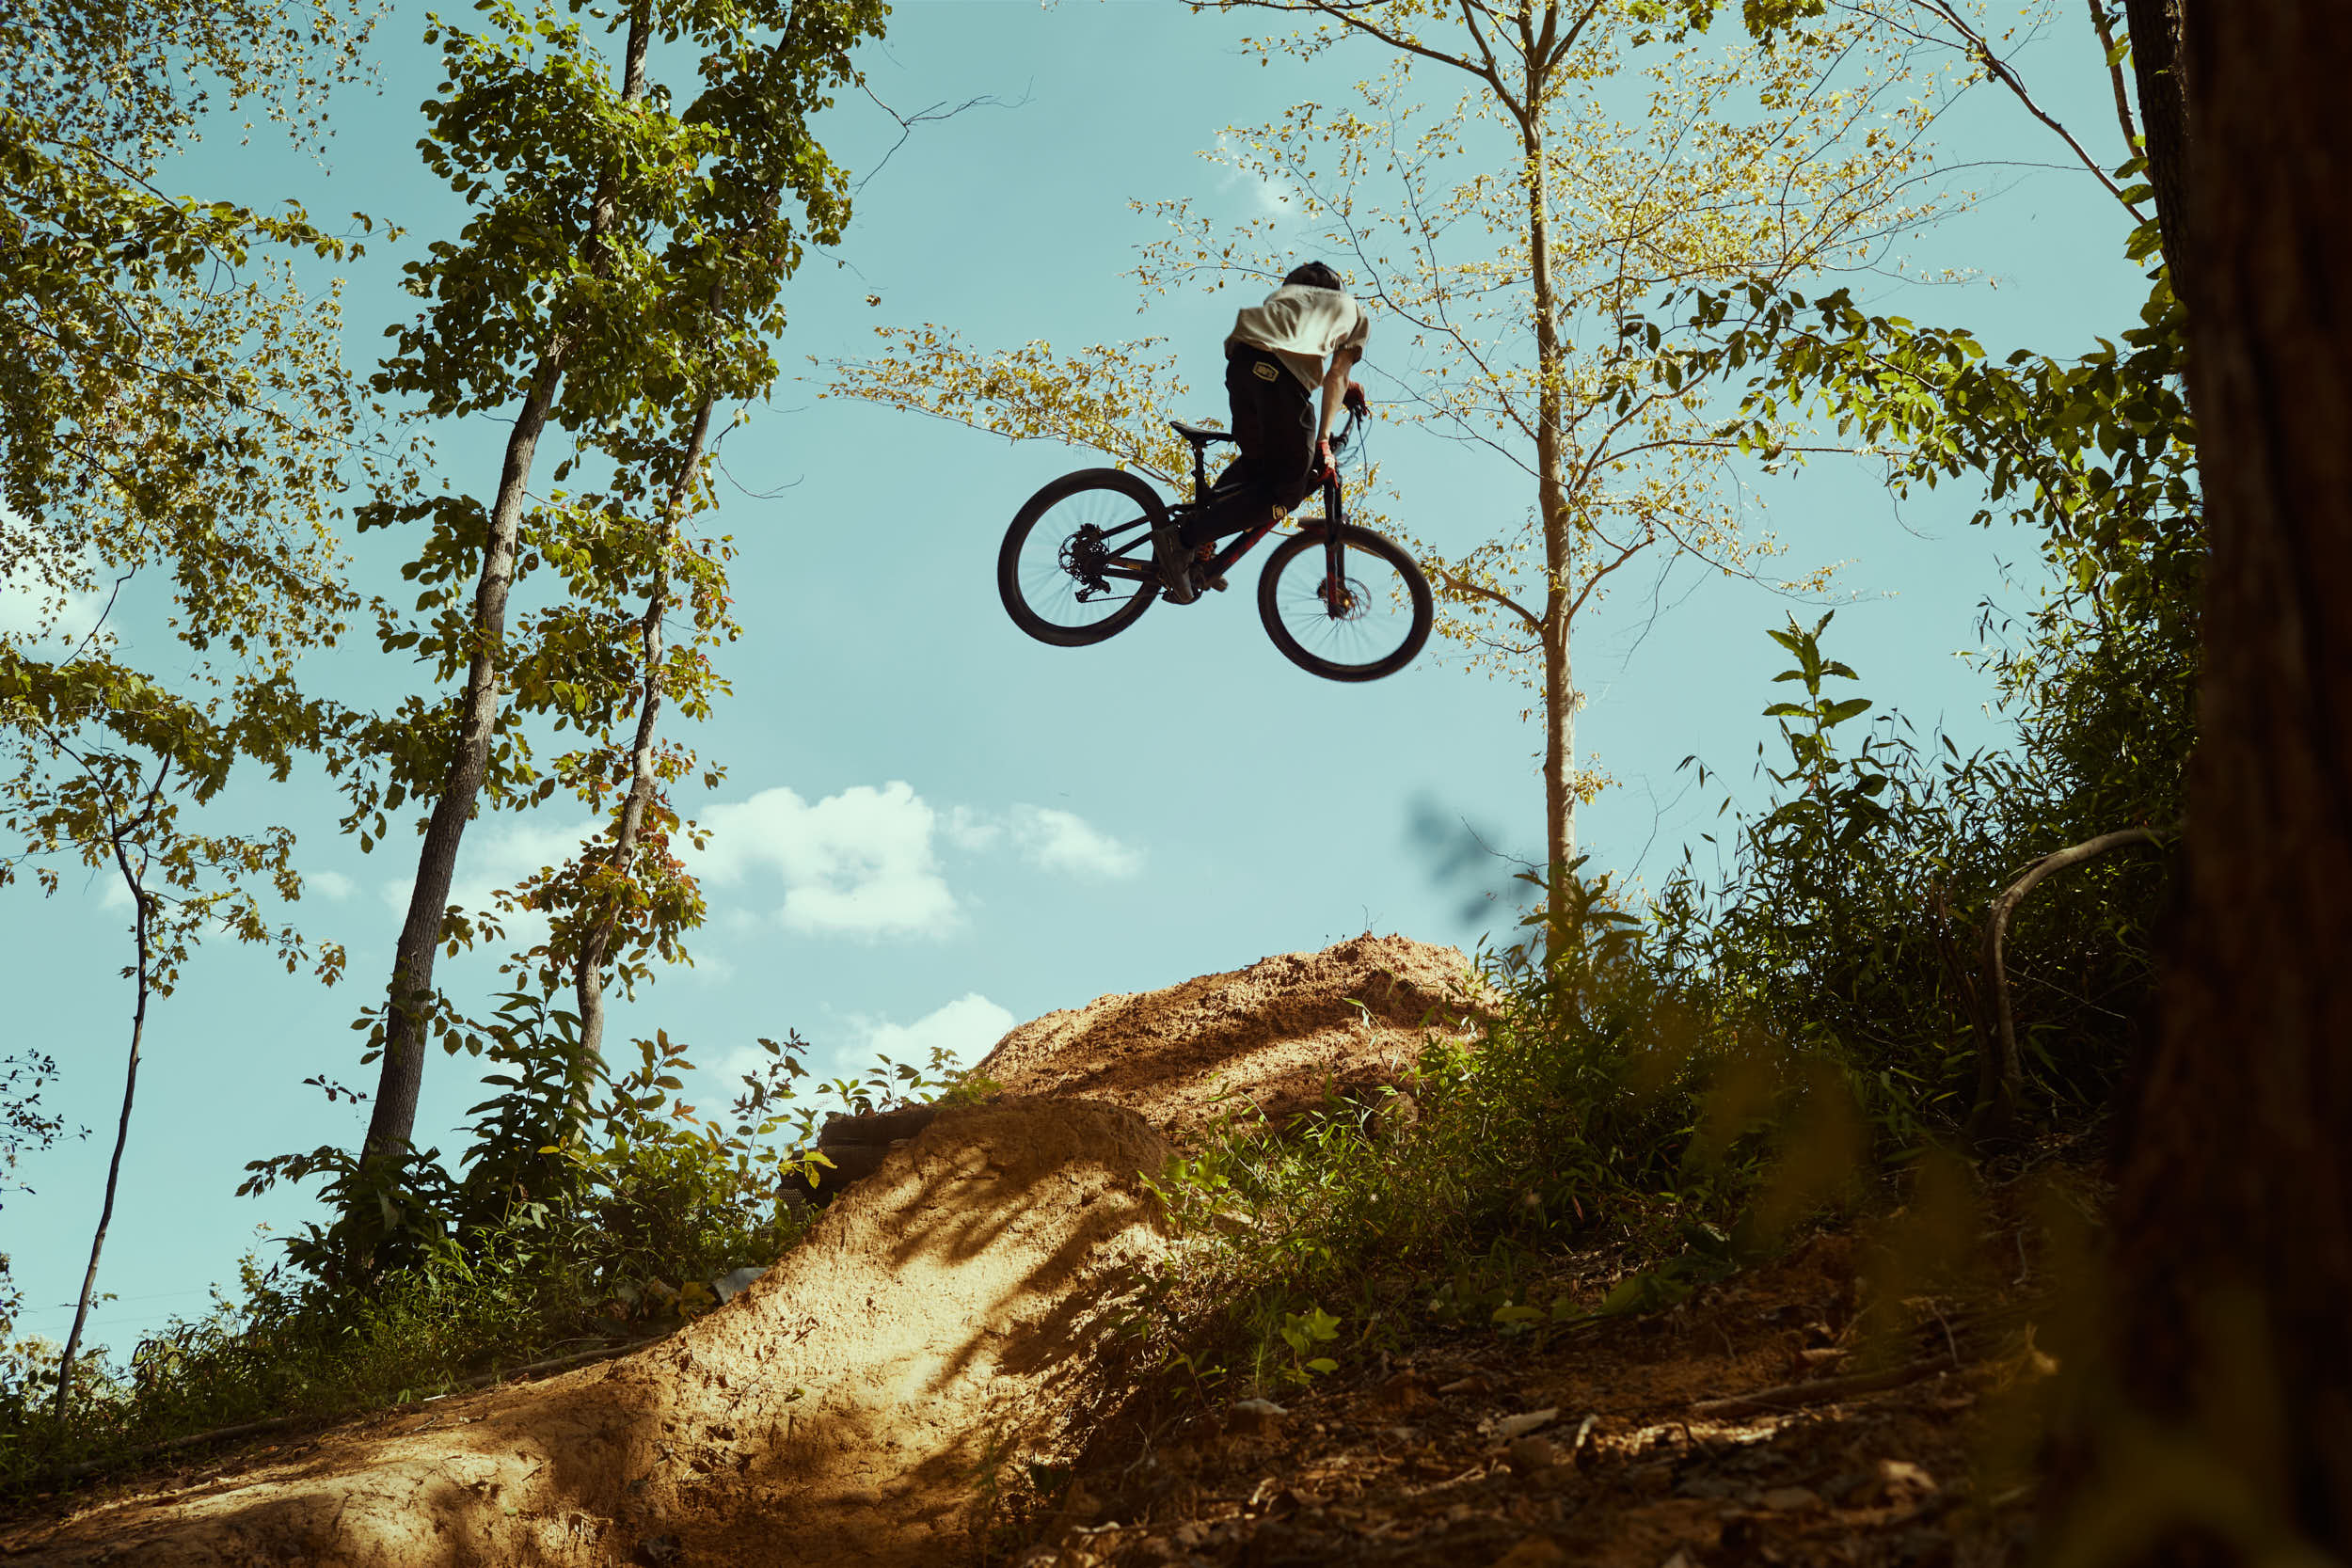 Cooper Rodrigues, downhill biker, jumping a hand-dug ramp in Raleigh, NC.